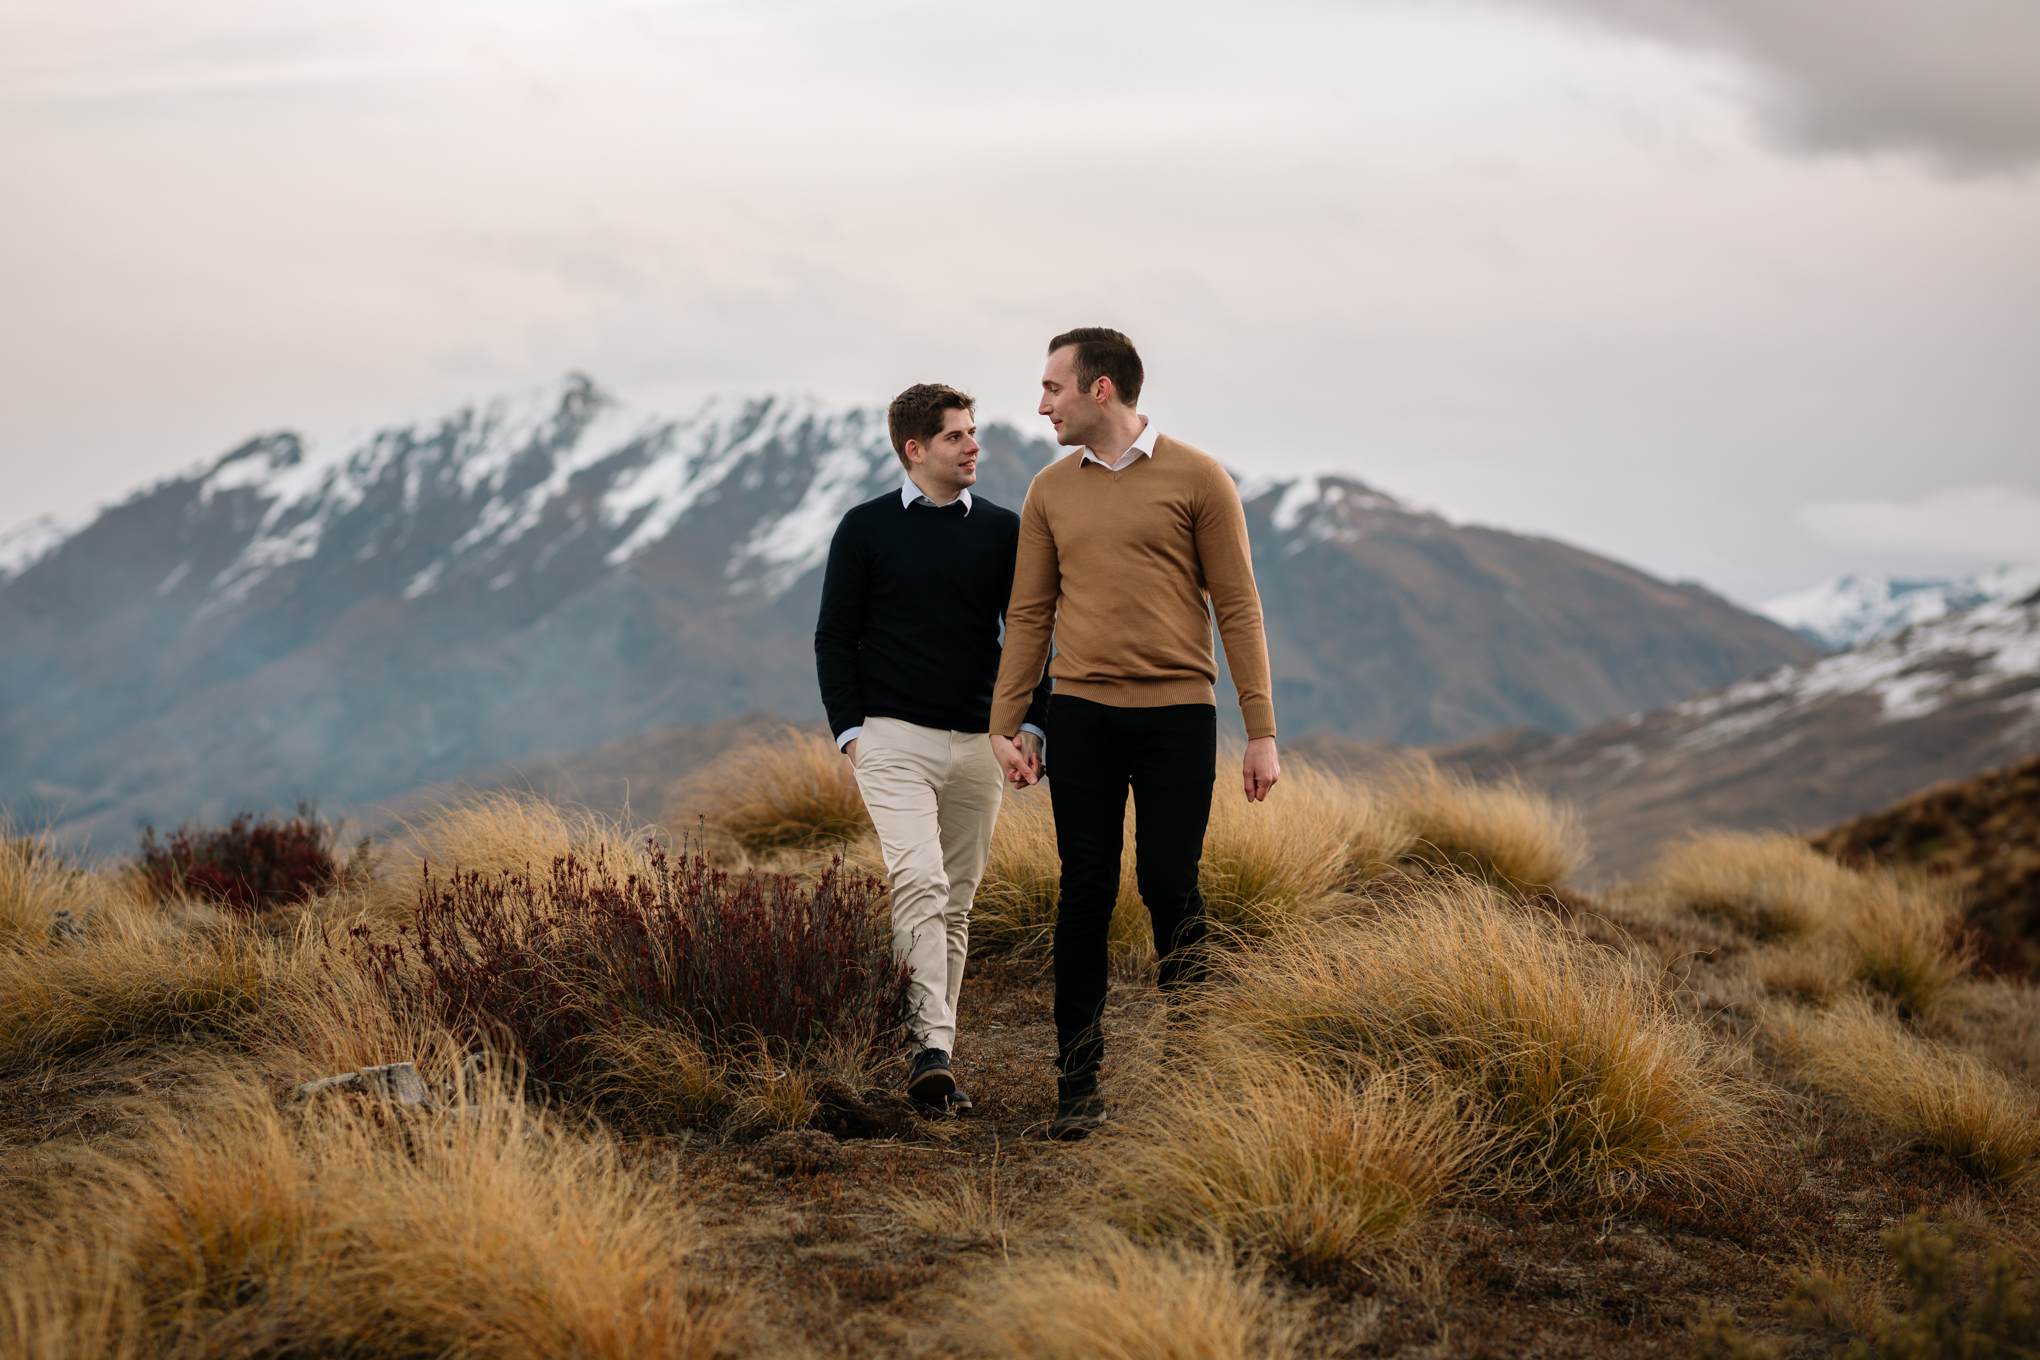 queenstownengagement-74.jpg